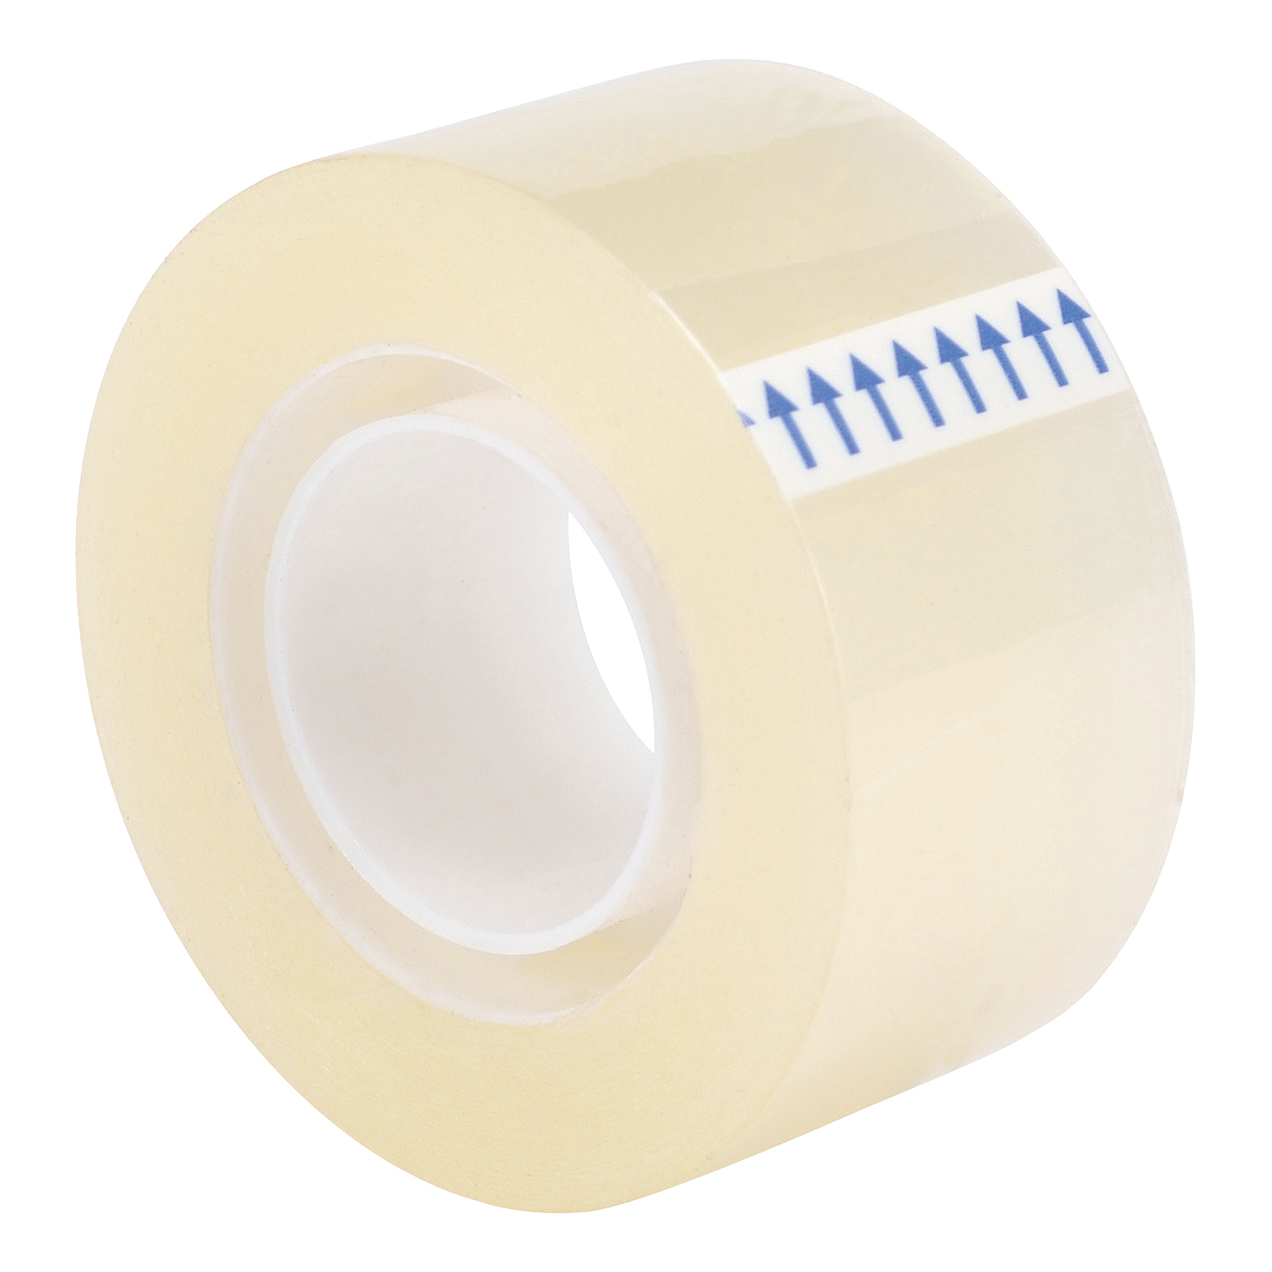 Clear Tape 5 Star Office Clear Tape Roll Small Easy-tear Polypropylene 40 Microns 24mm x 33m Pack 6